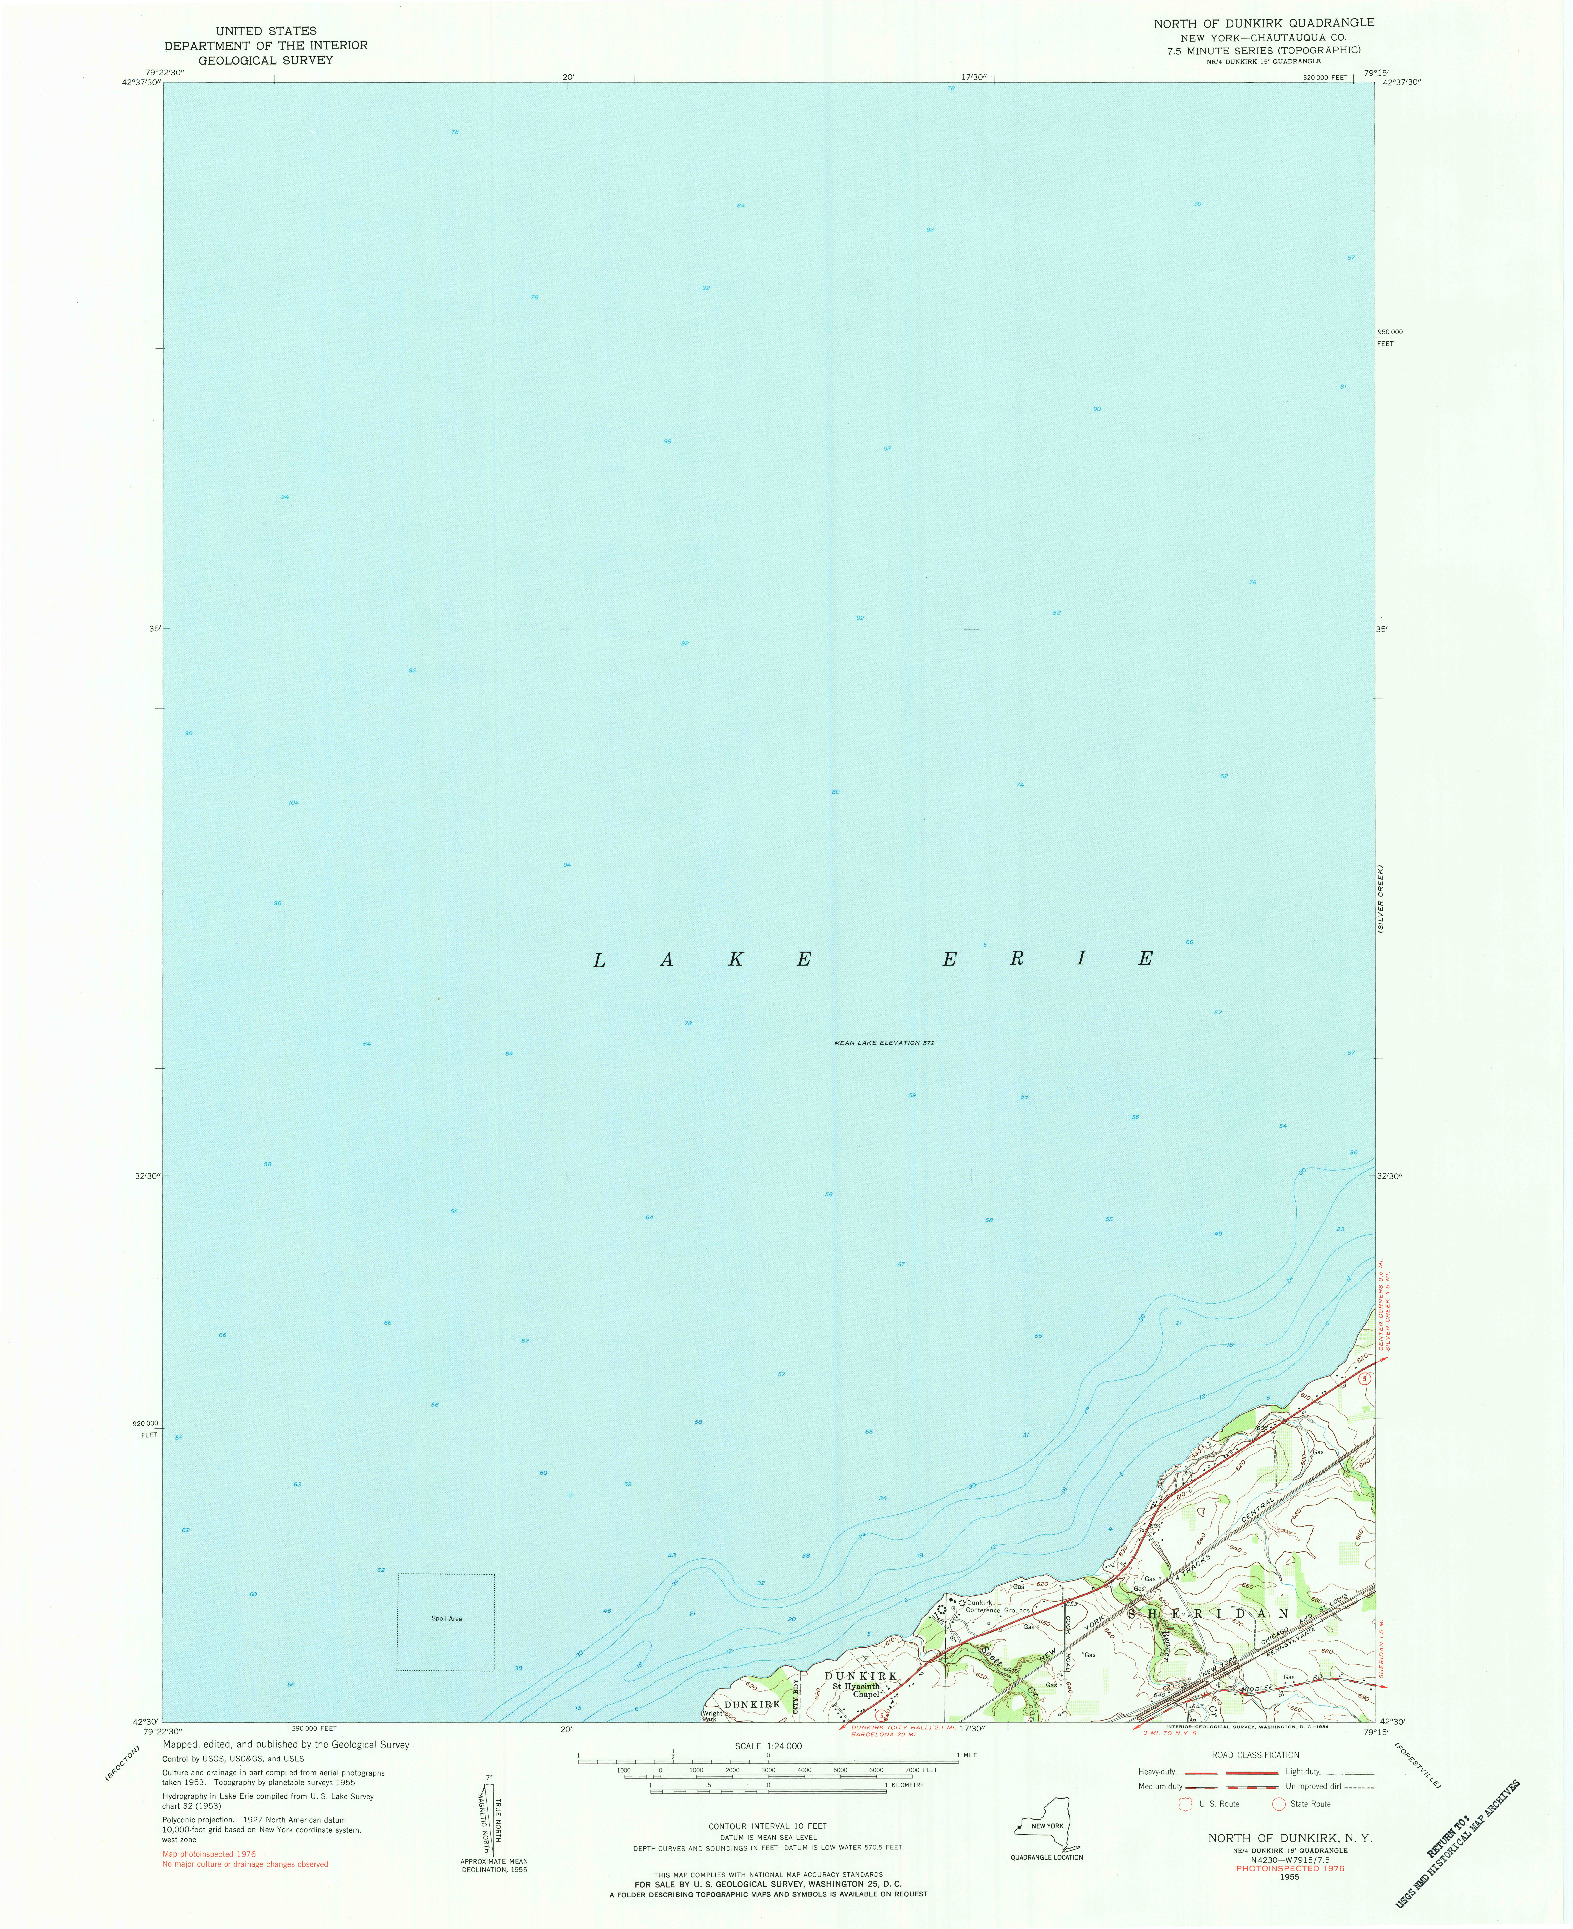 USGS 1:24000-SCALE QUADRANGLE FOR NORTH OF DUNKIRK, NY 1955